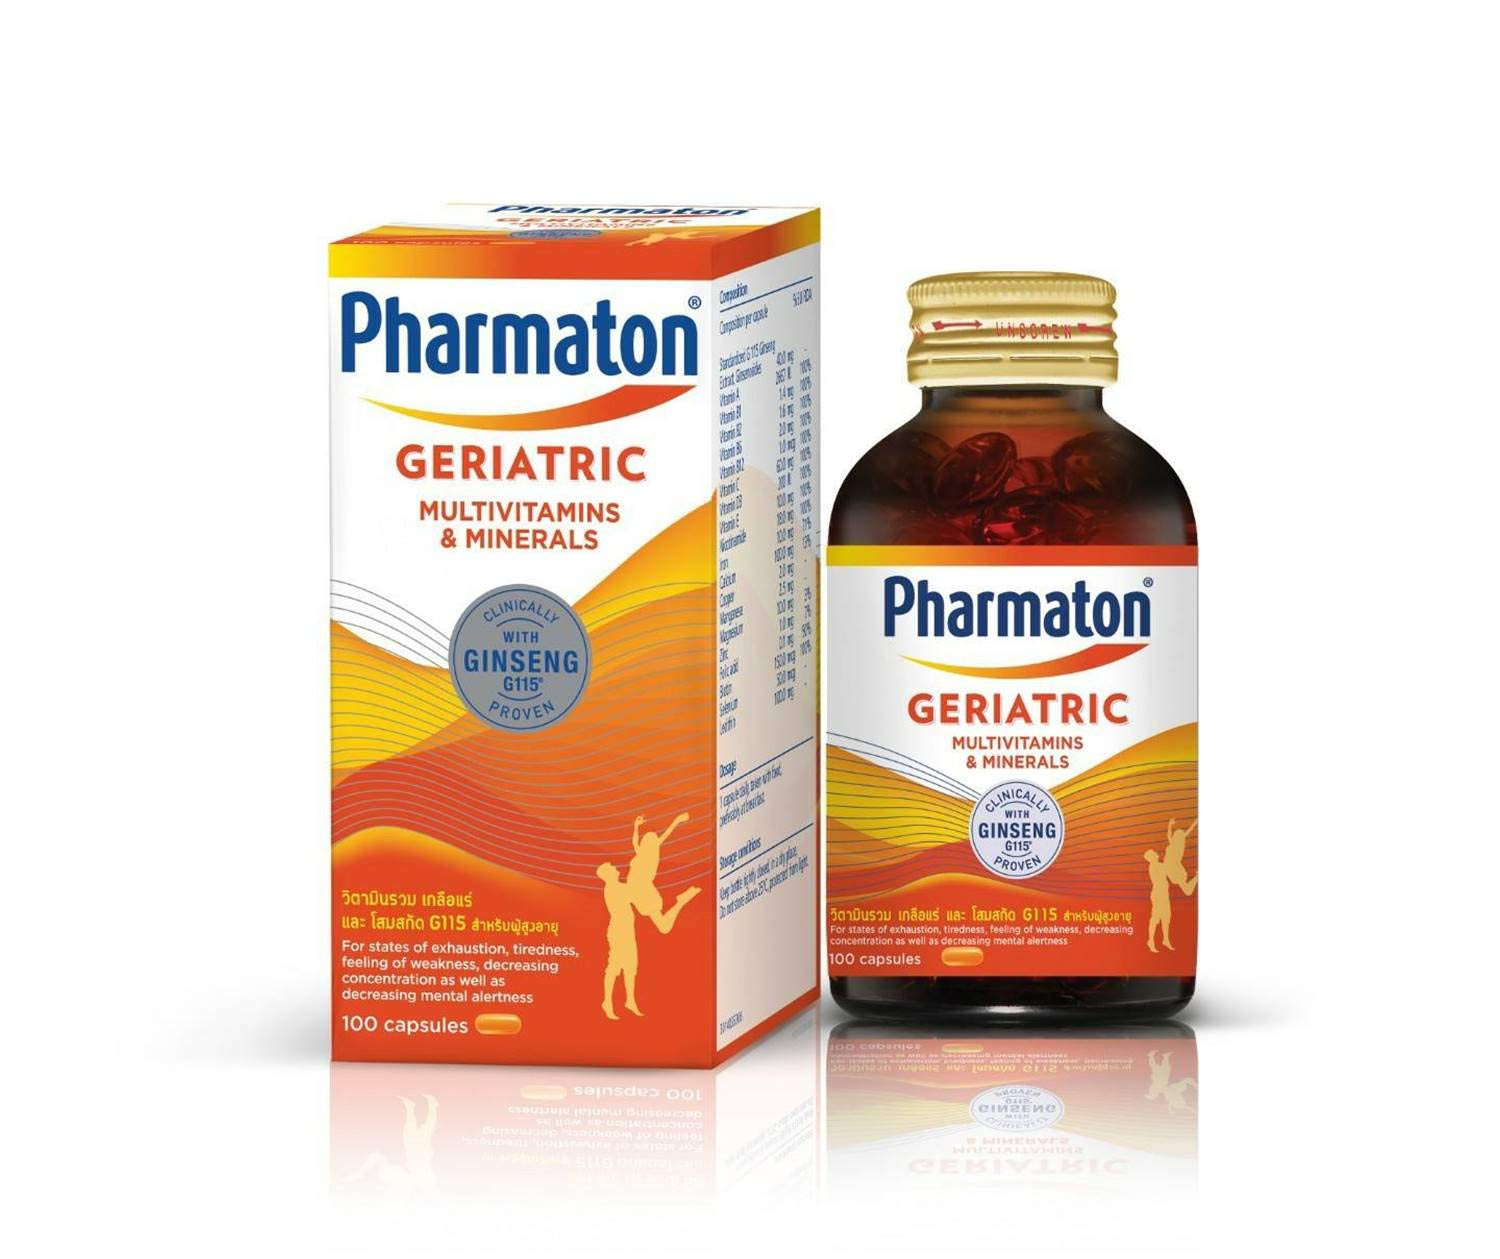 Geriatric Pharmaton Ginseng Extract G115 (100 Capsules) +++ Swiss Quality + New Package + Same Formula +++ Clinical Proven for The Prophylaxis of Ages Infirmities and Retard Convalescence